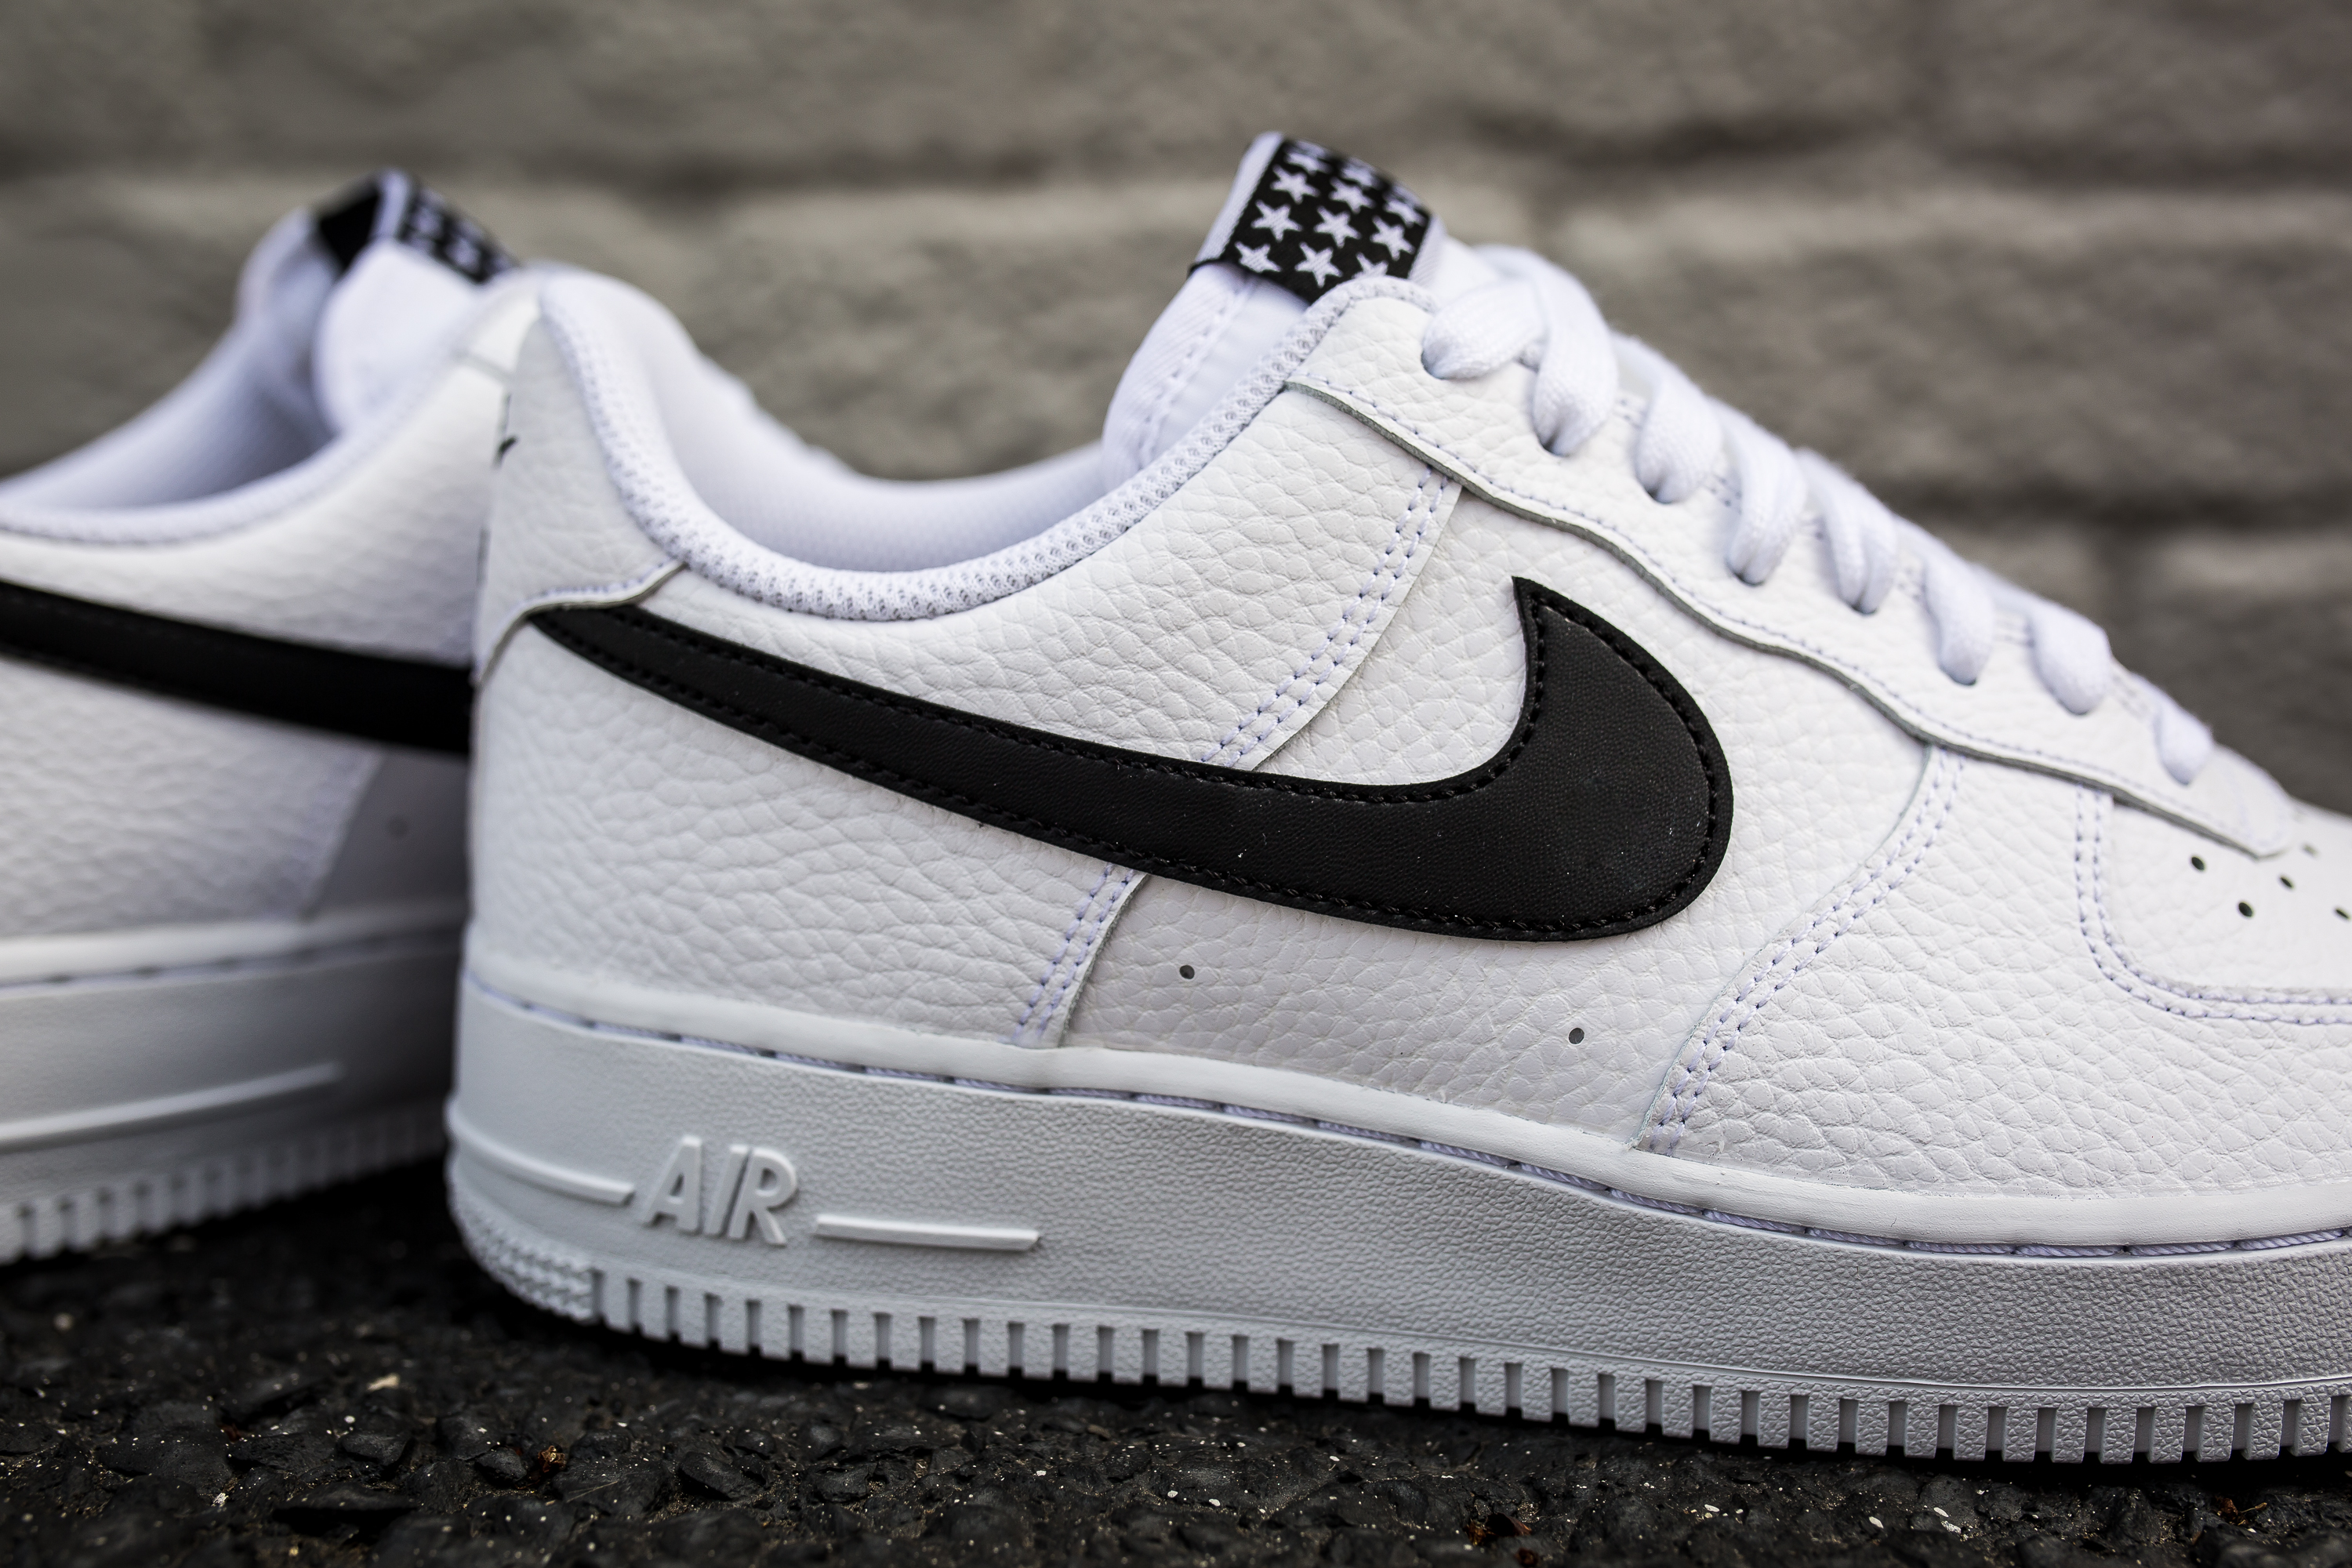 nike april 2018 air force 1 delivery packer shoes. Black Bedroom Furniture Sets. Home Design Ideas